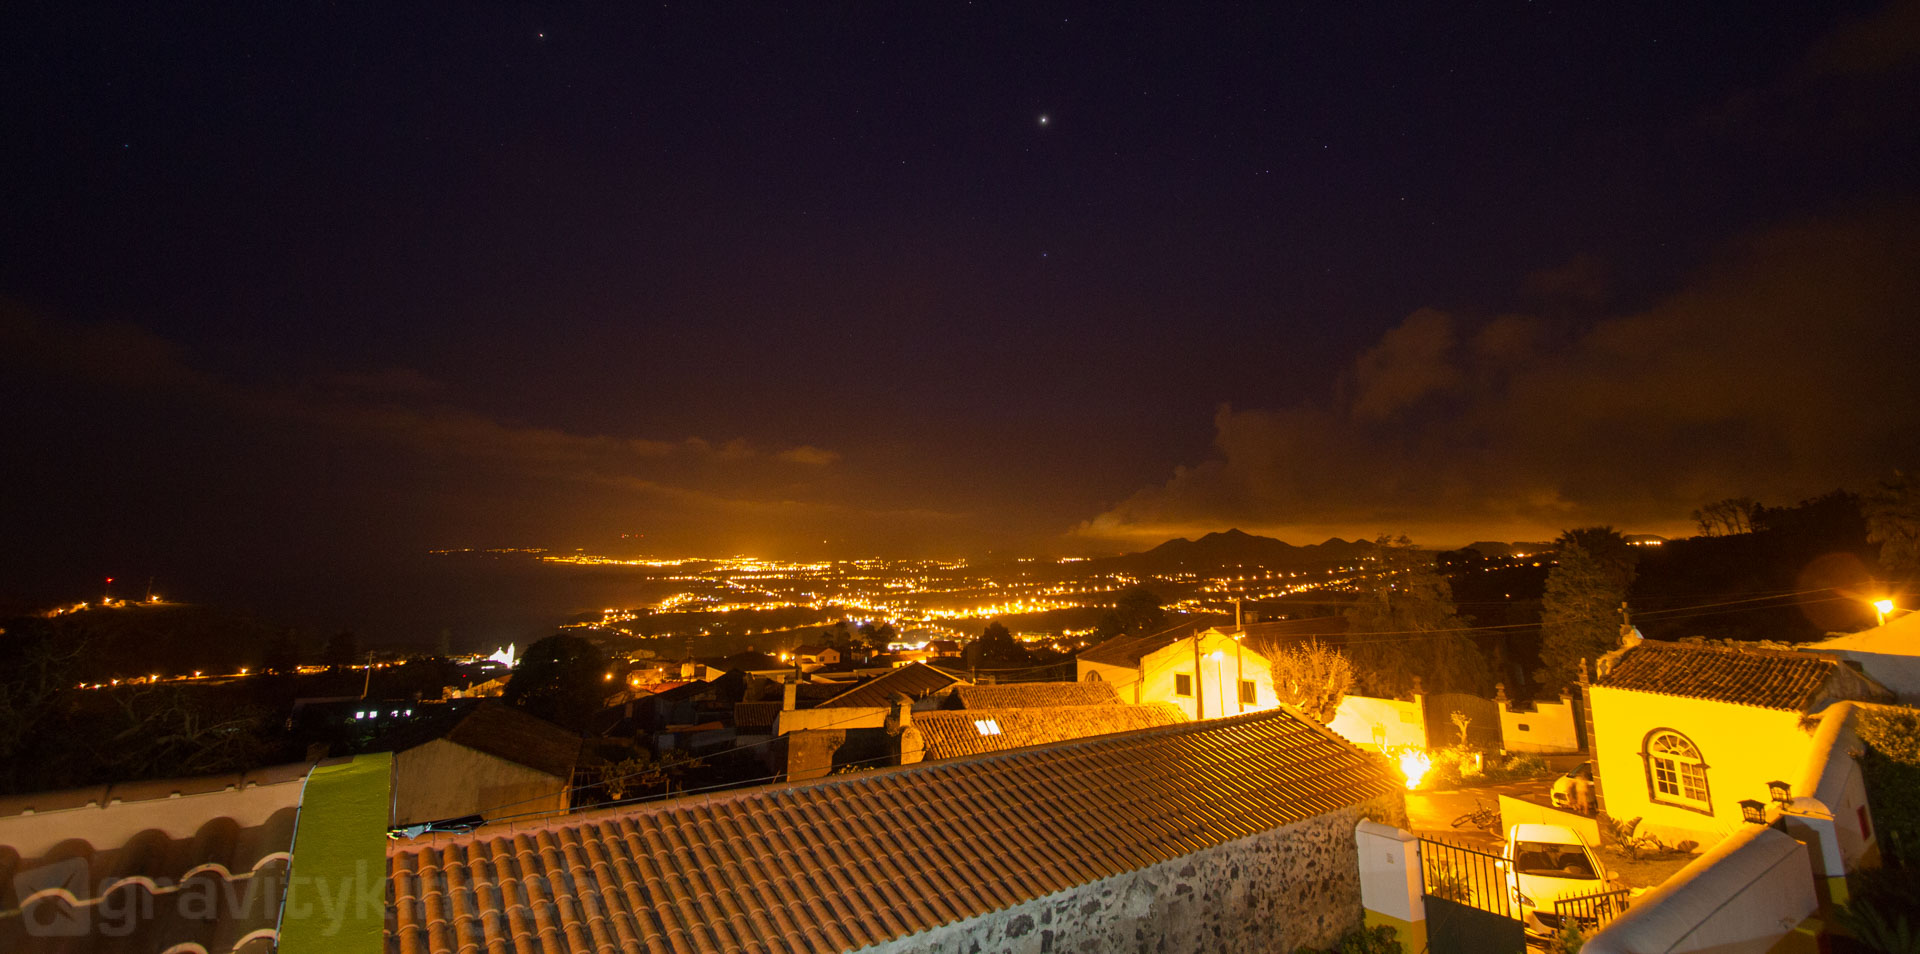 The view from the surfhouse at night. Capelas, São Miguel, Azores